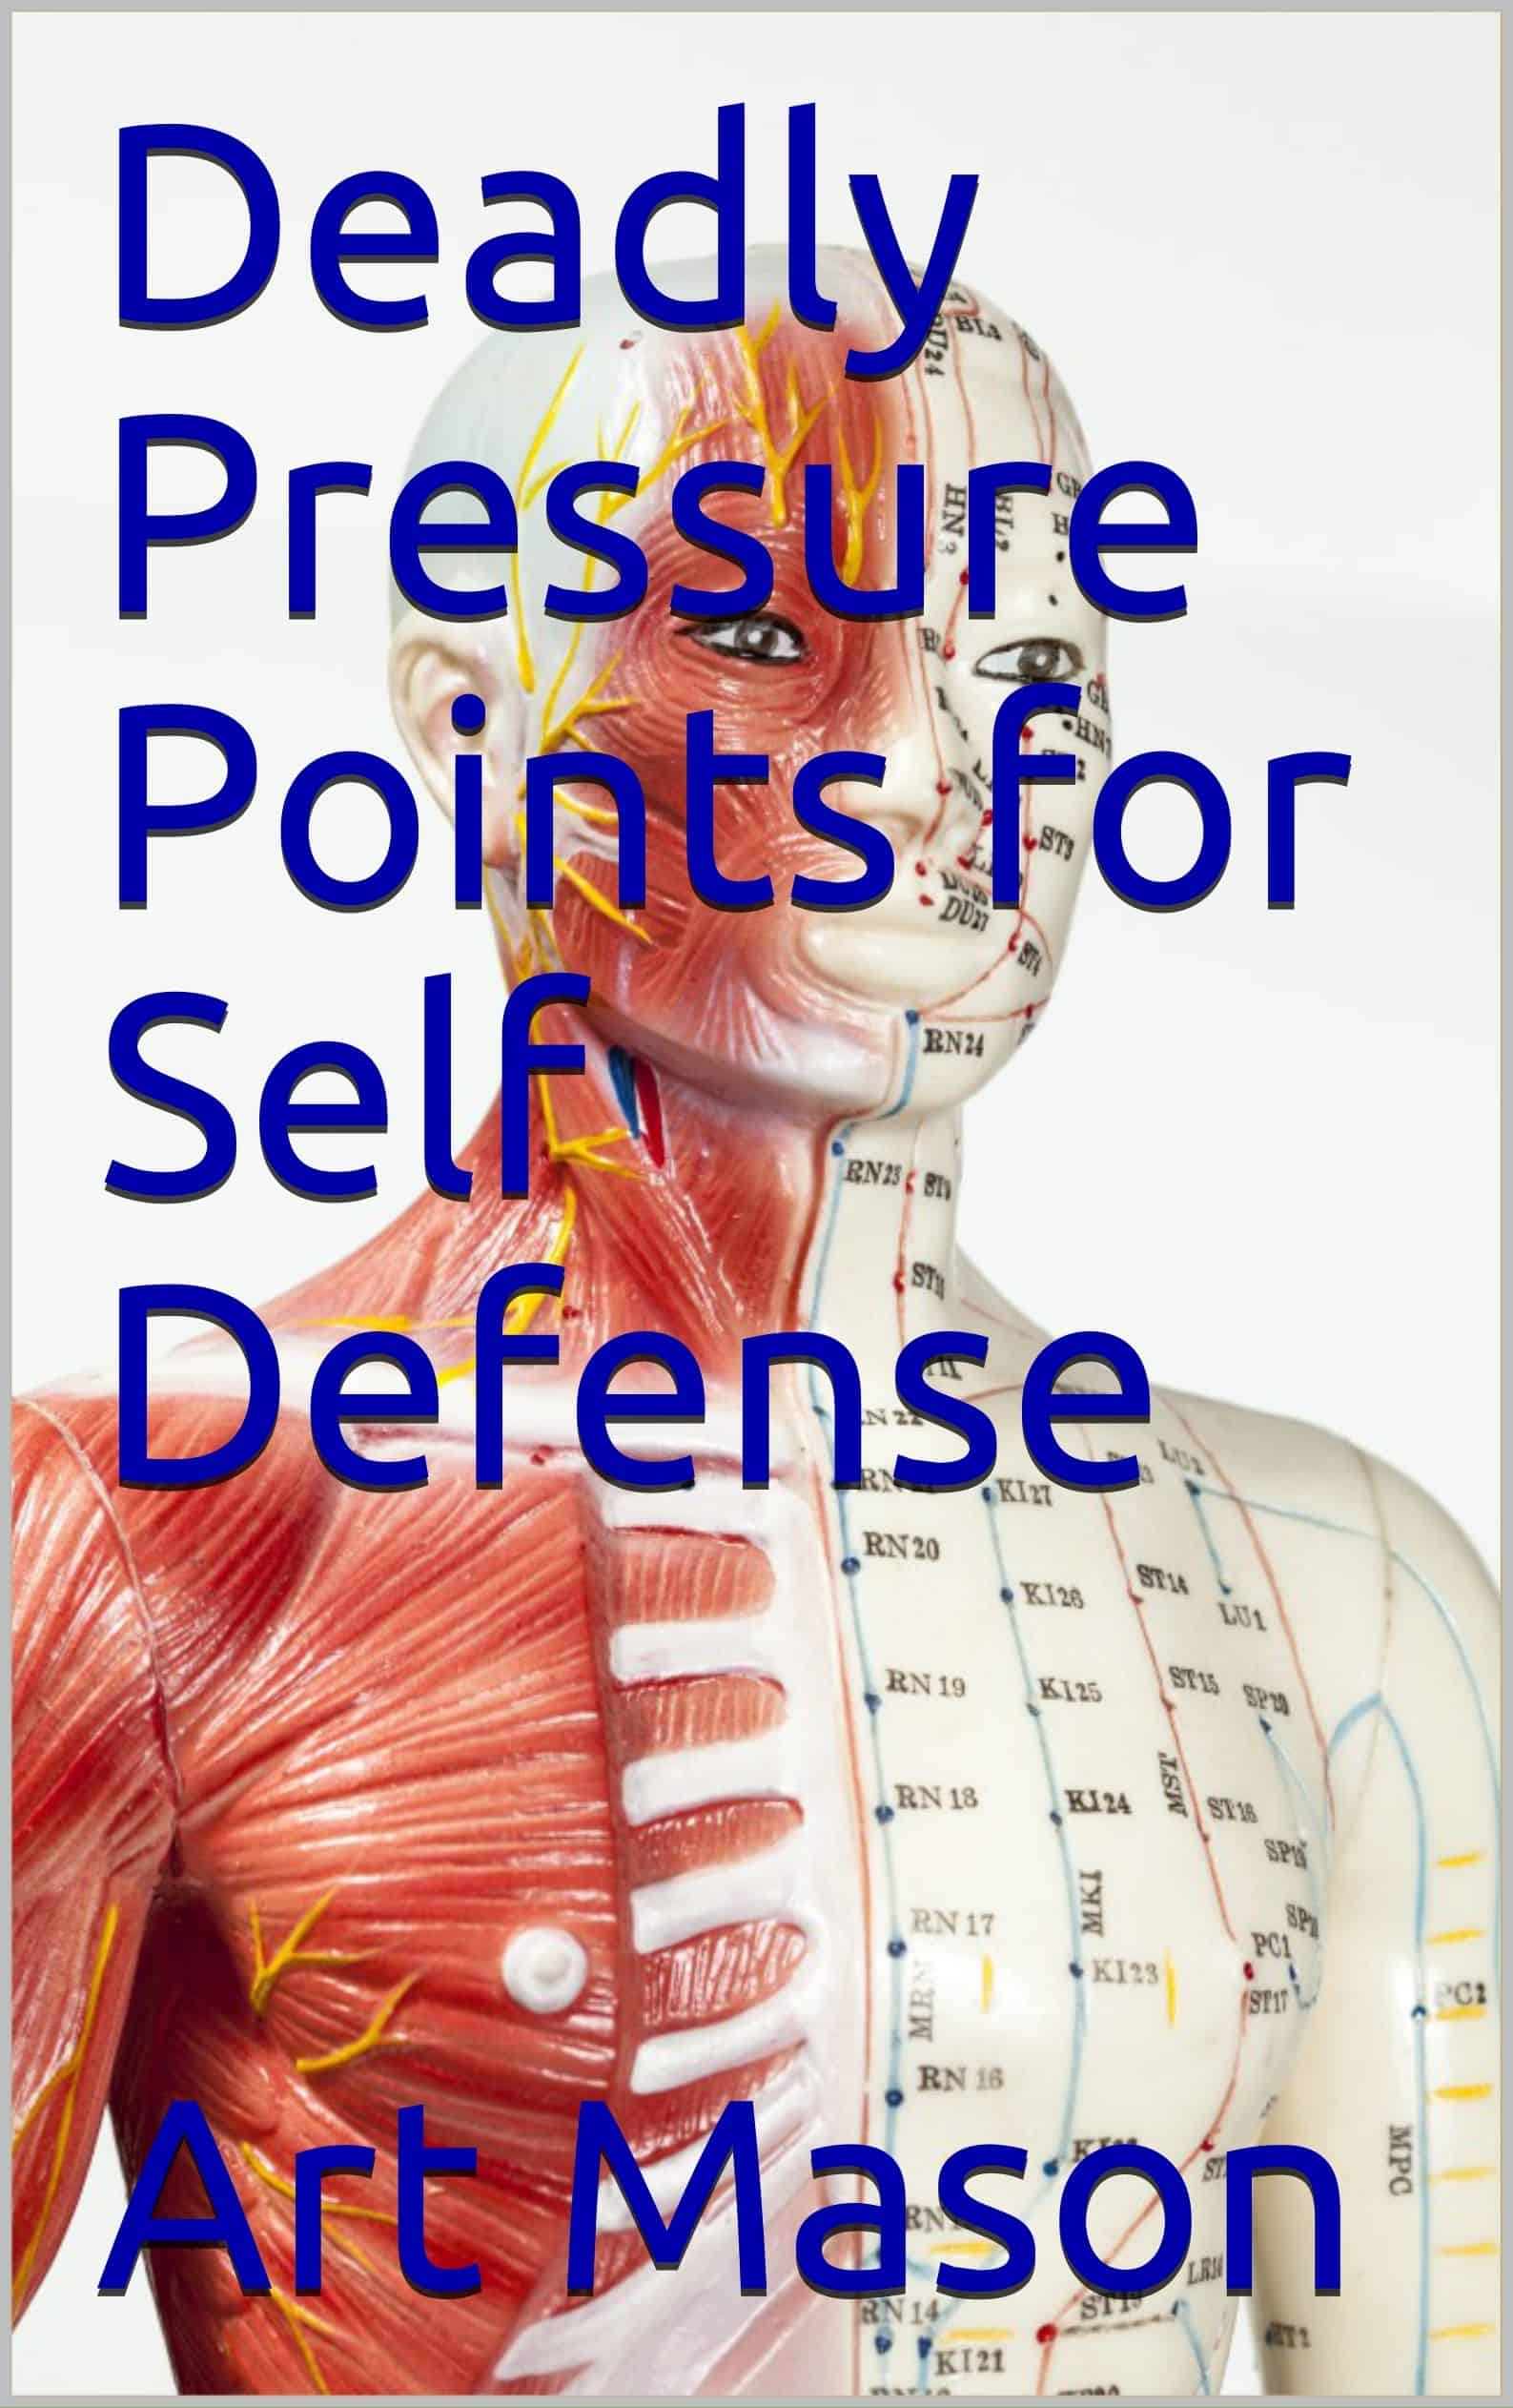 * Deadly Pressure Points for Self Defense